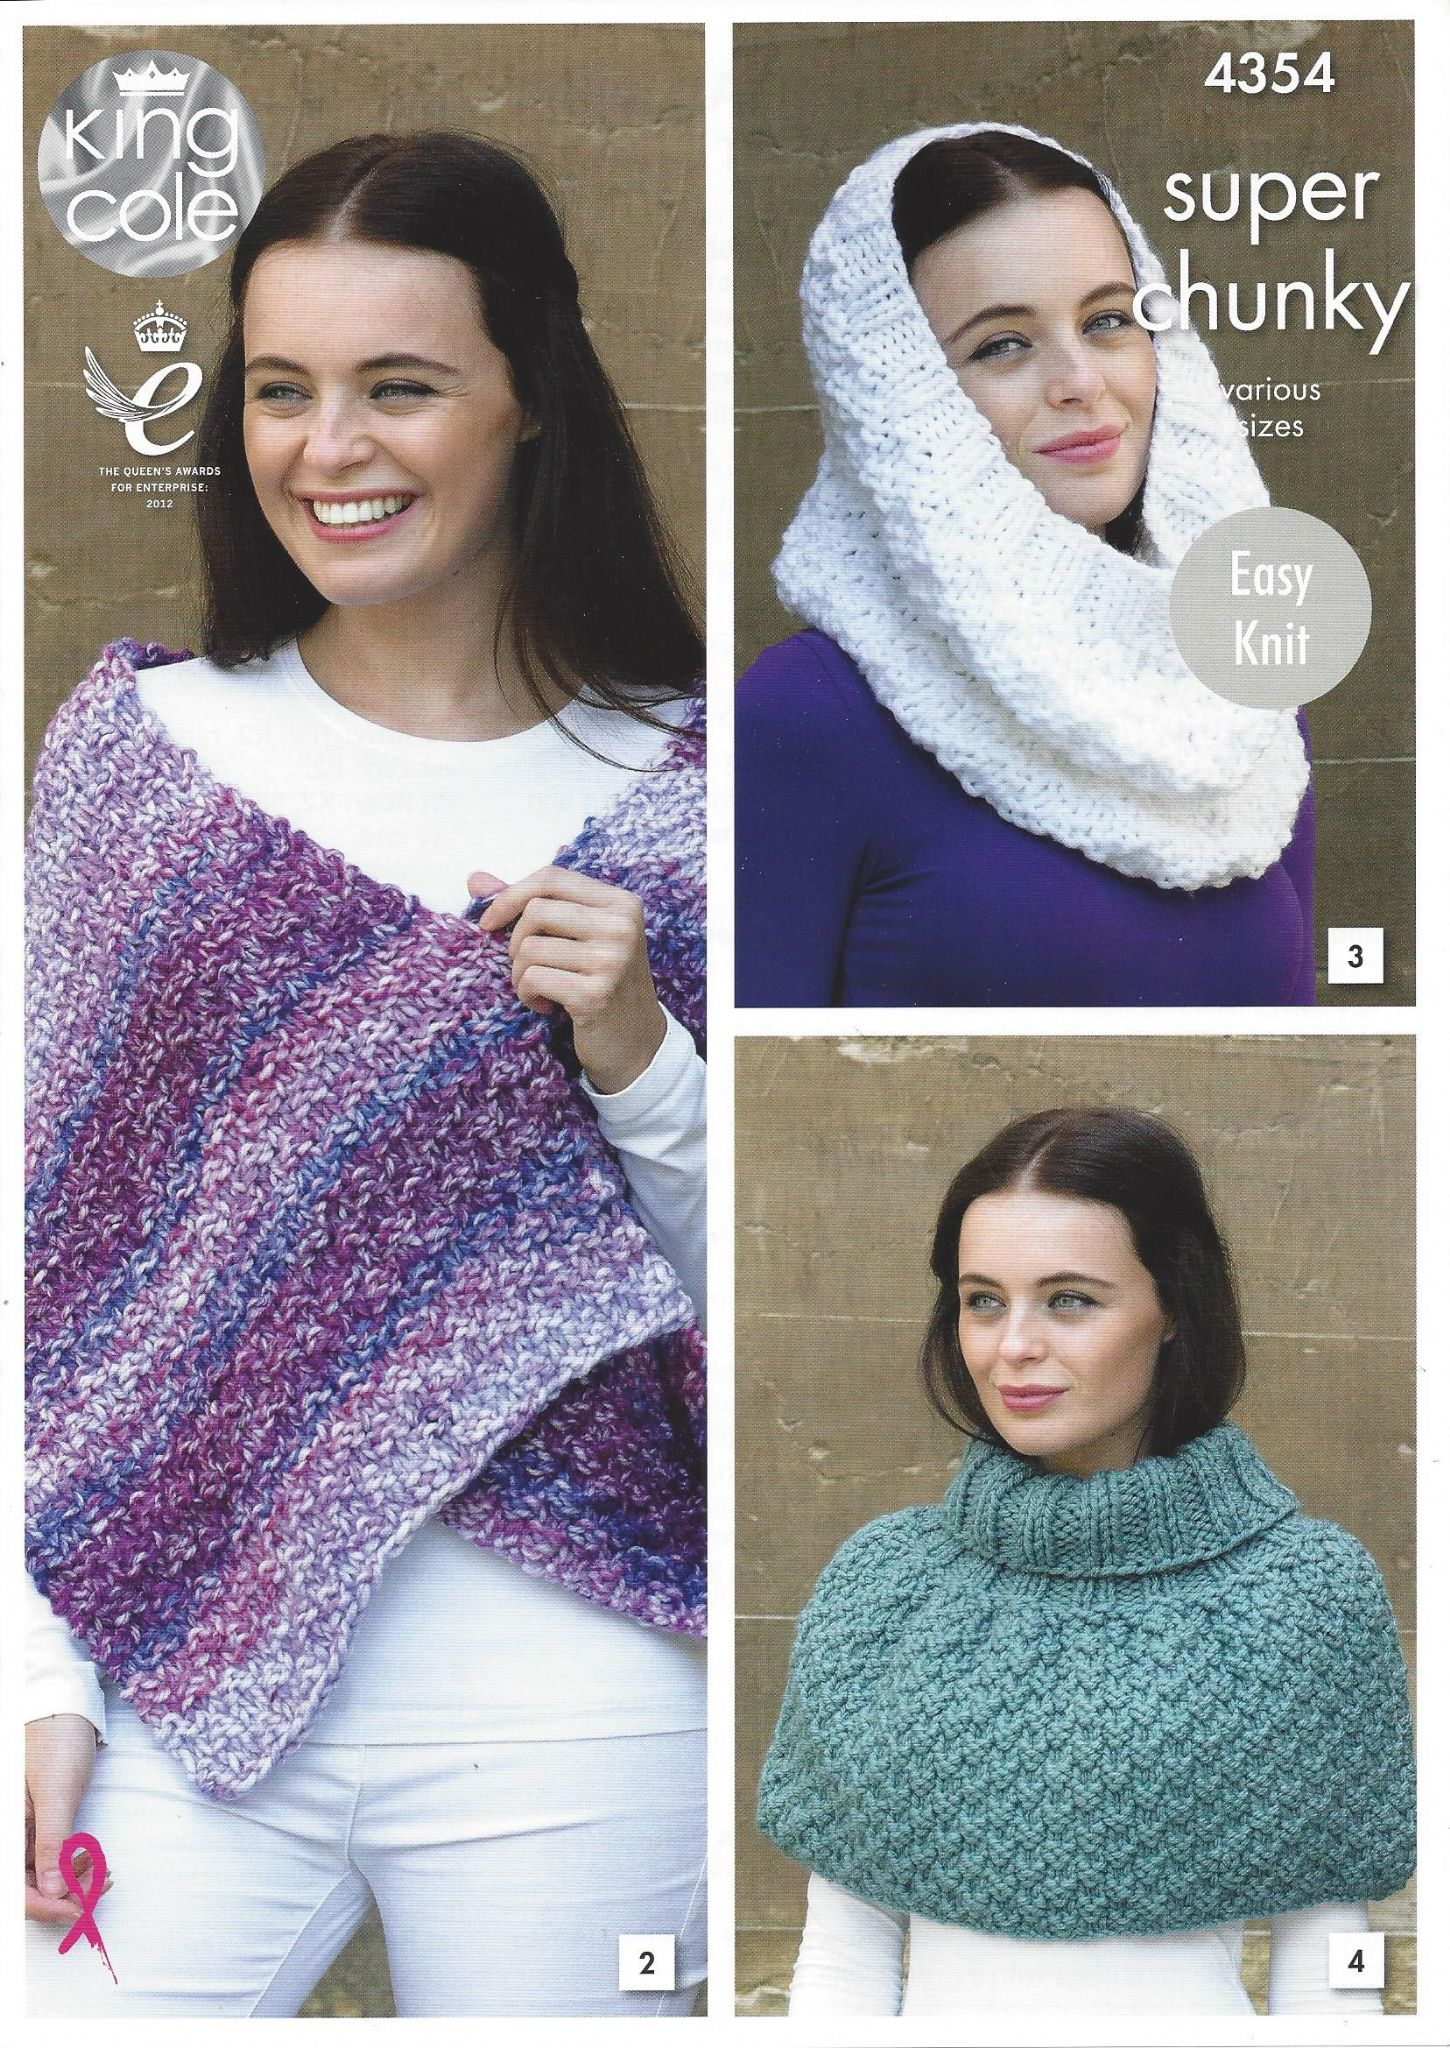 King cole 4354 scarf shoulder wrap snood polo shoulder cover hat king cole 4354 scarf shoulder wrap snood polo shoulder cover hat wrist warmers knitting pattern in super chunky bankloansurffo Image collections